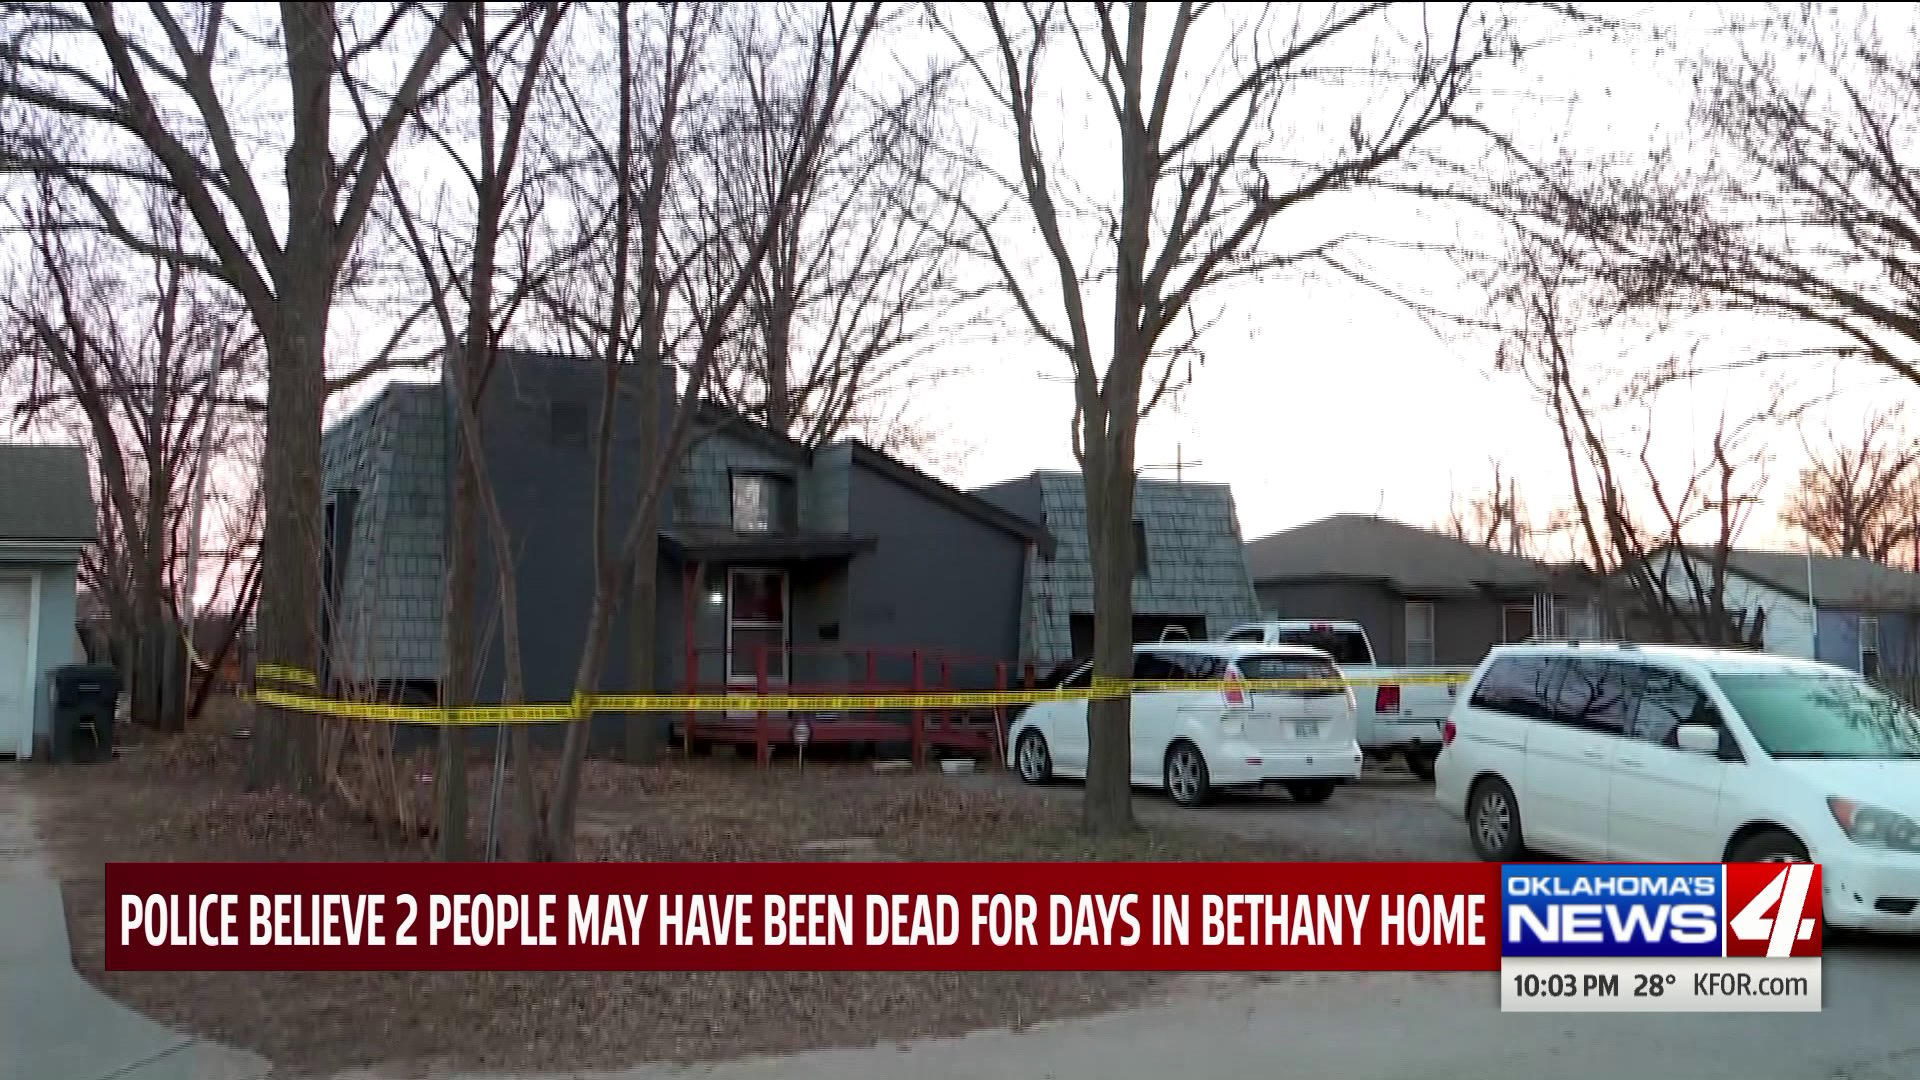 Bethany police investigate bodies found in home